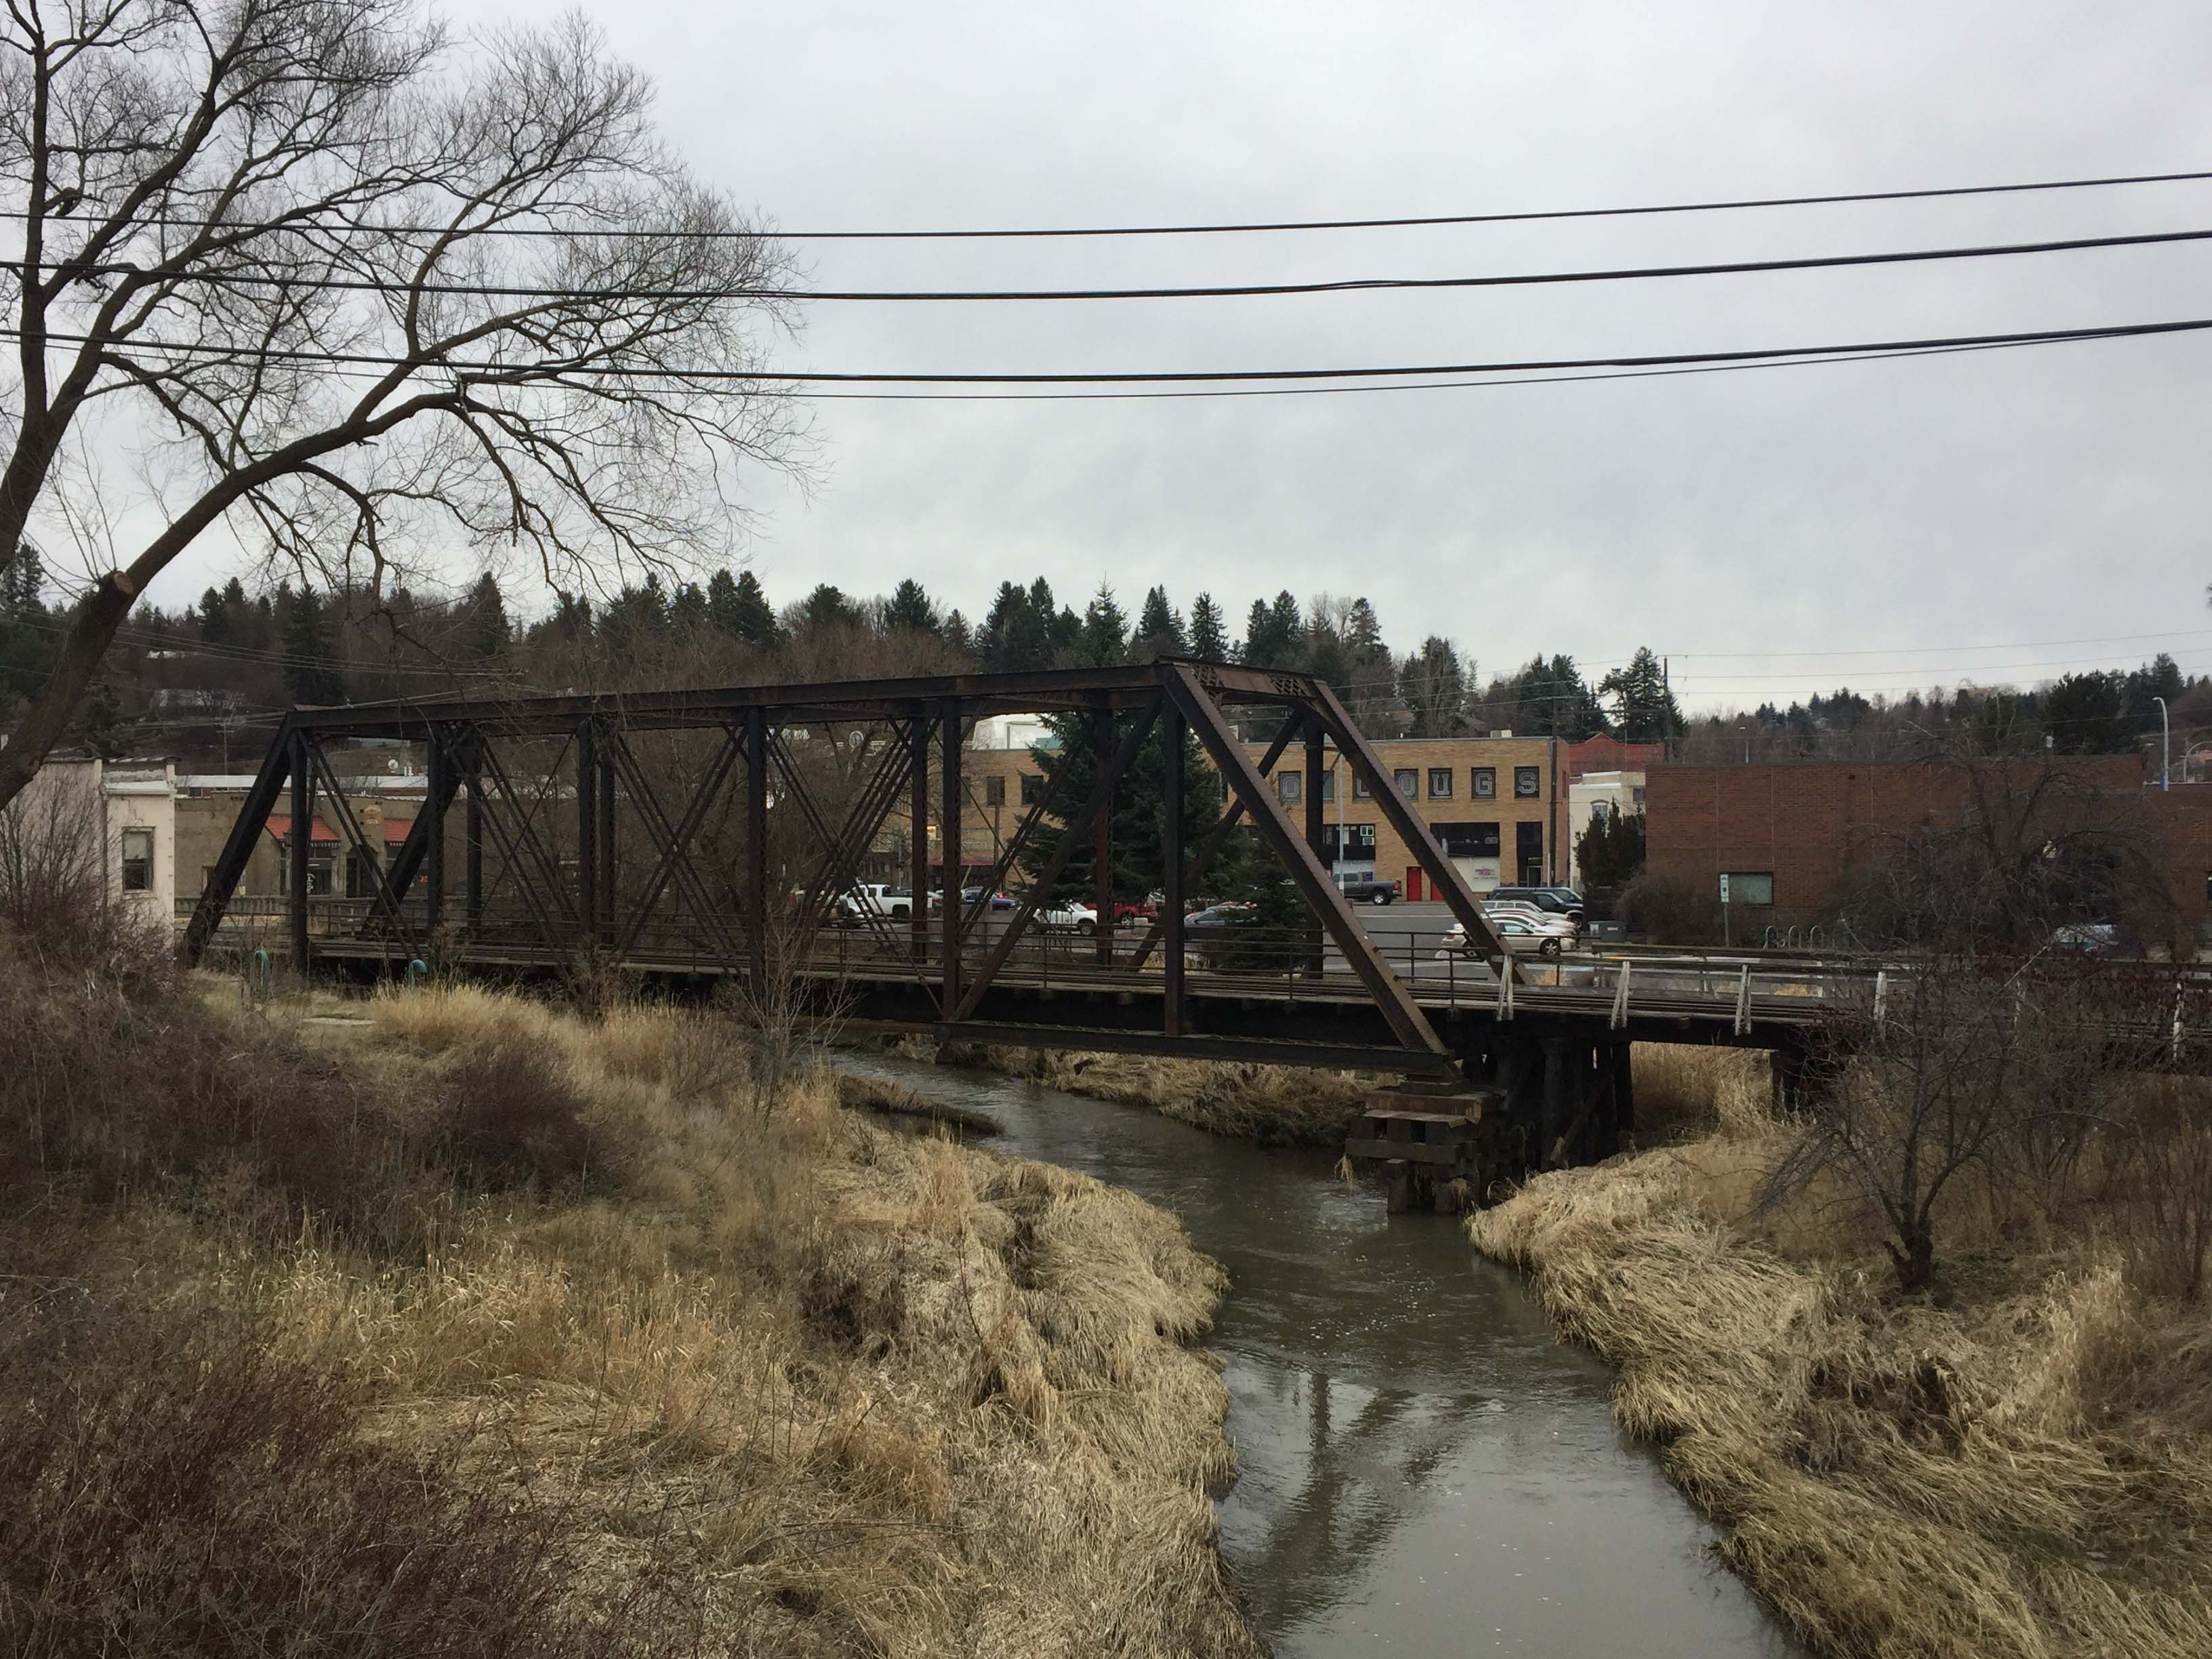 View looking back at the bridge, taken February 2018.